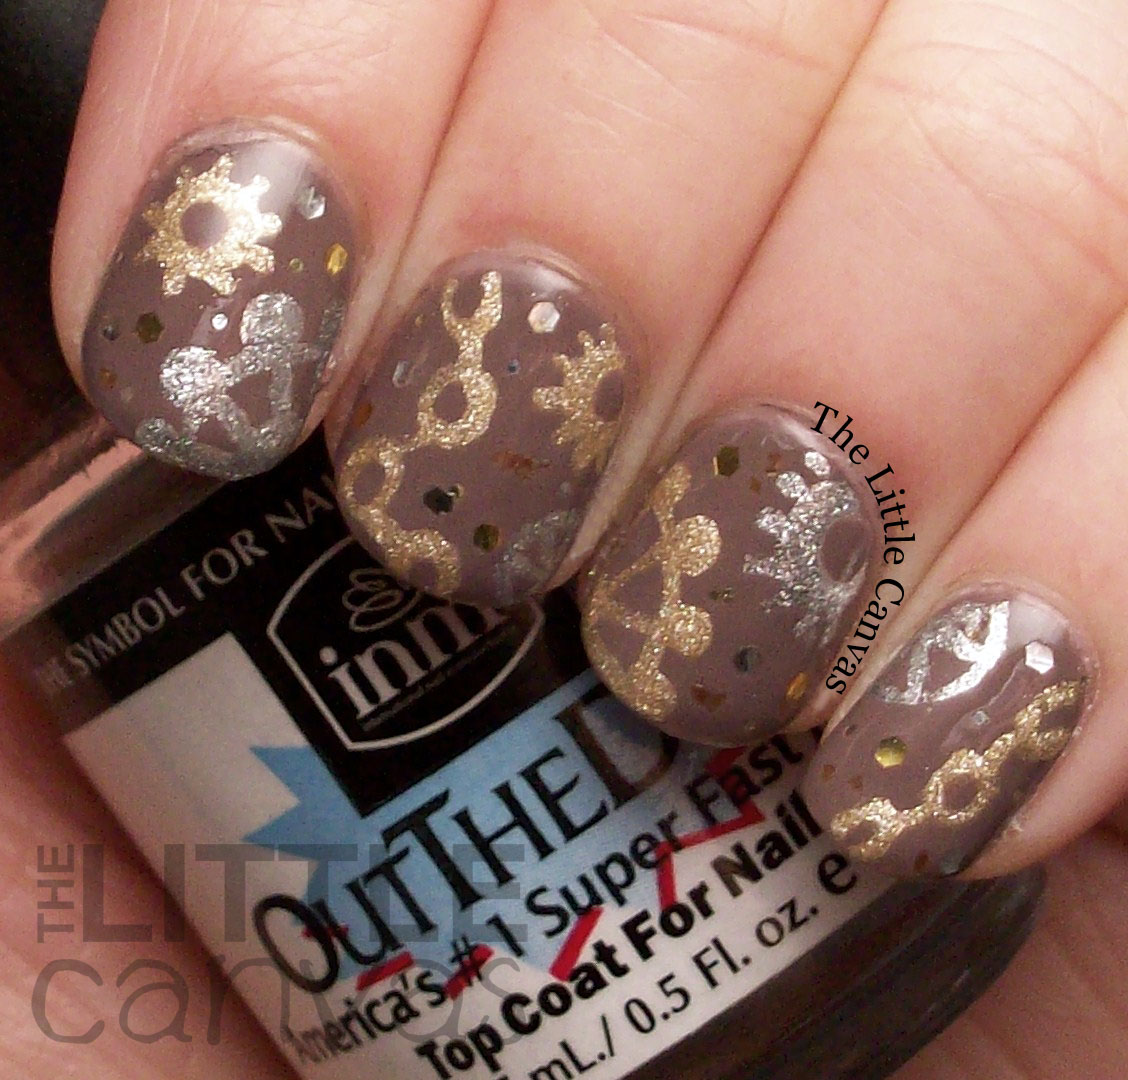 The beauty buffs metallic steampunk nail art the little canvas i love doing art with metallicfoil polishes on a cream base they really stand out and add a whole new dimension to the art im very happy that my friend prinsesfo Gallery